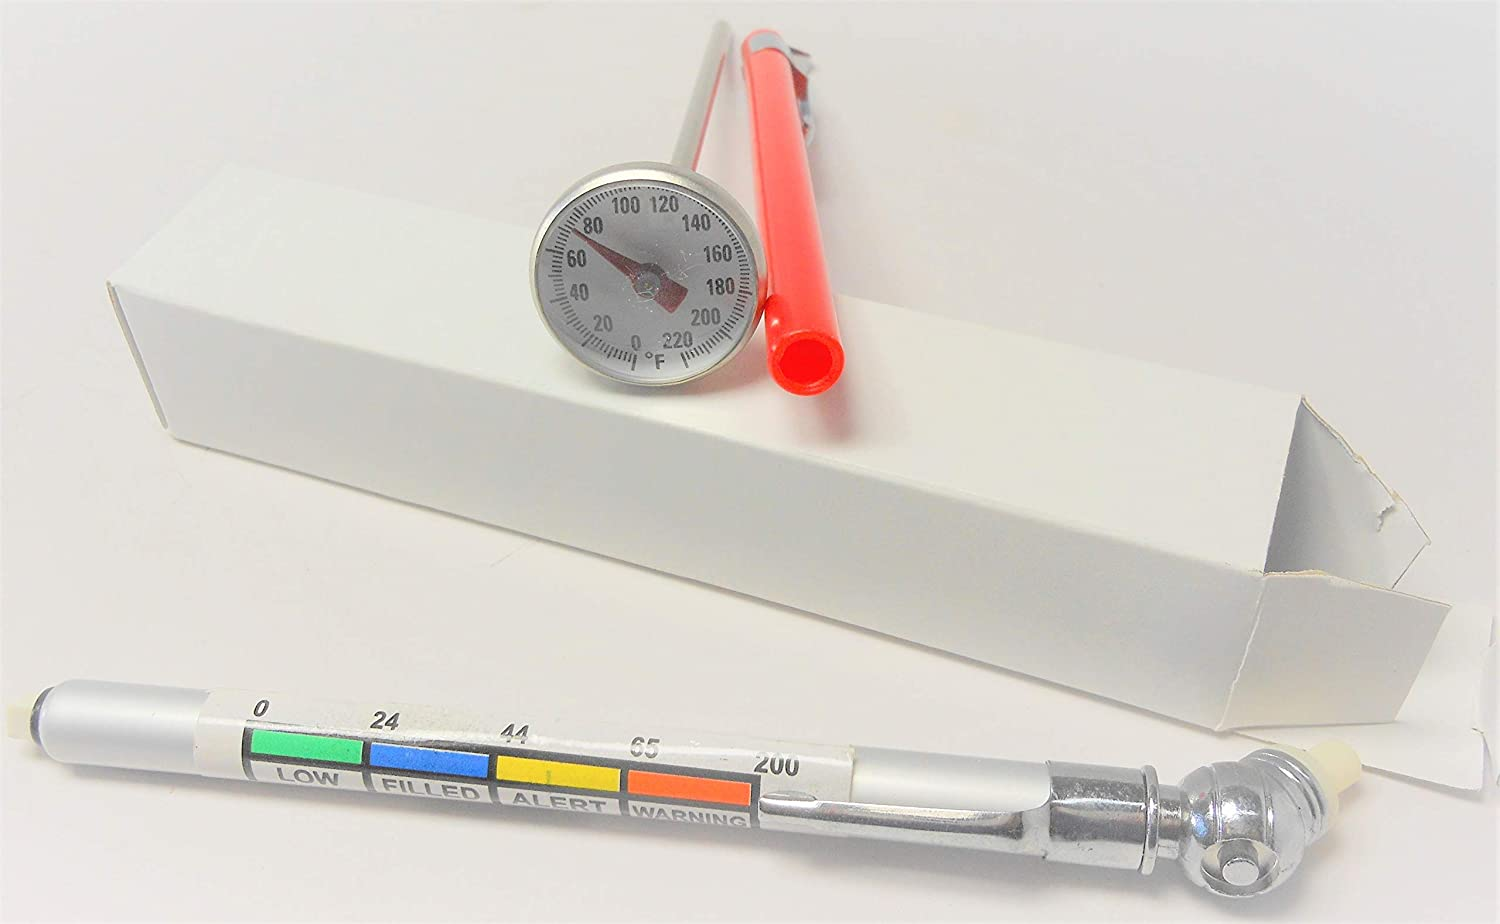 Automotive A//C Test Thermometer for R-12 and R-134a Refrigerant